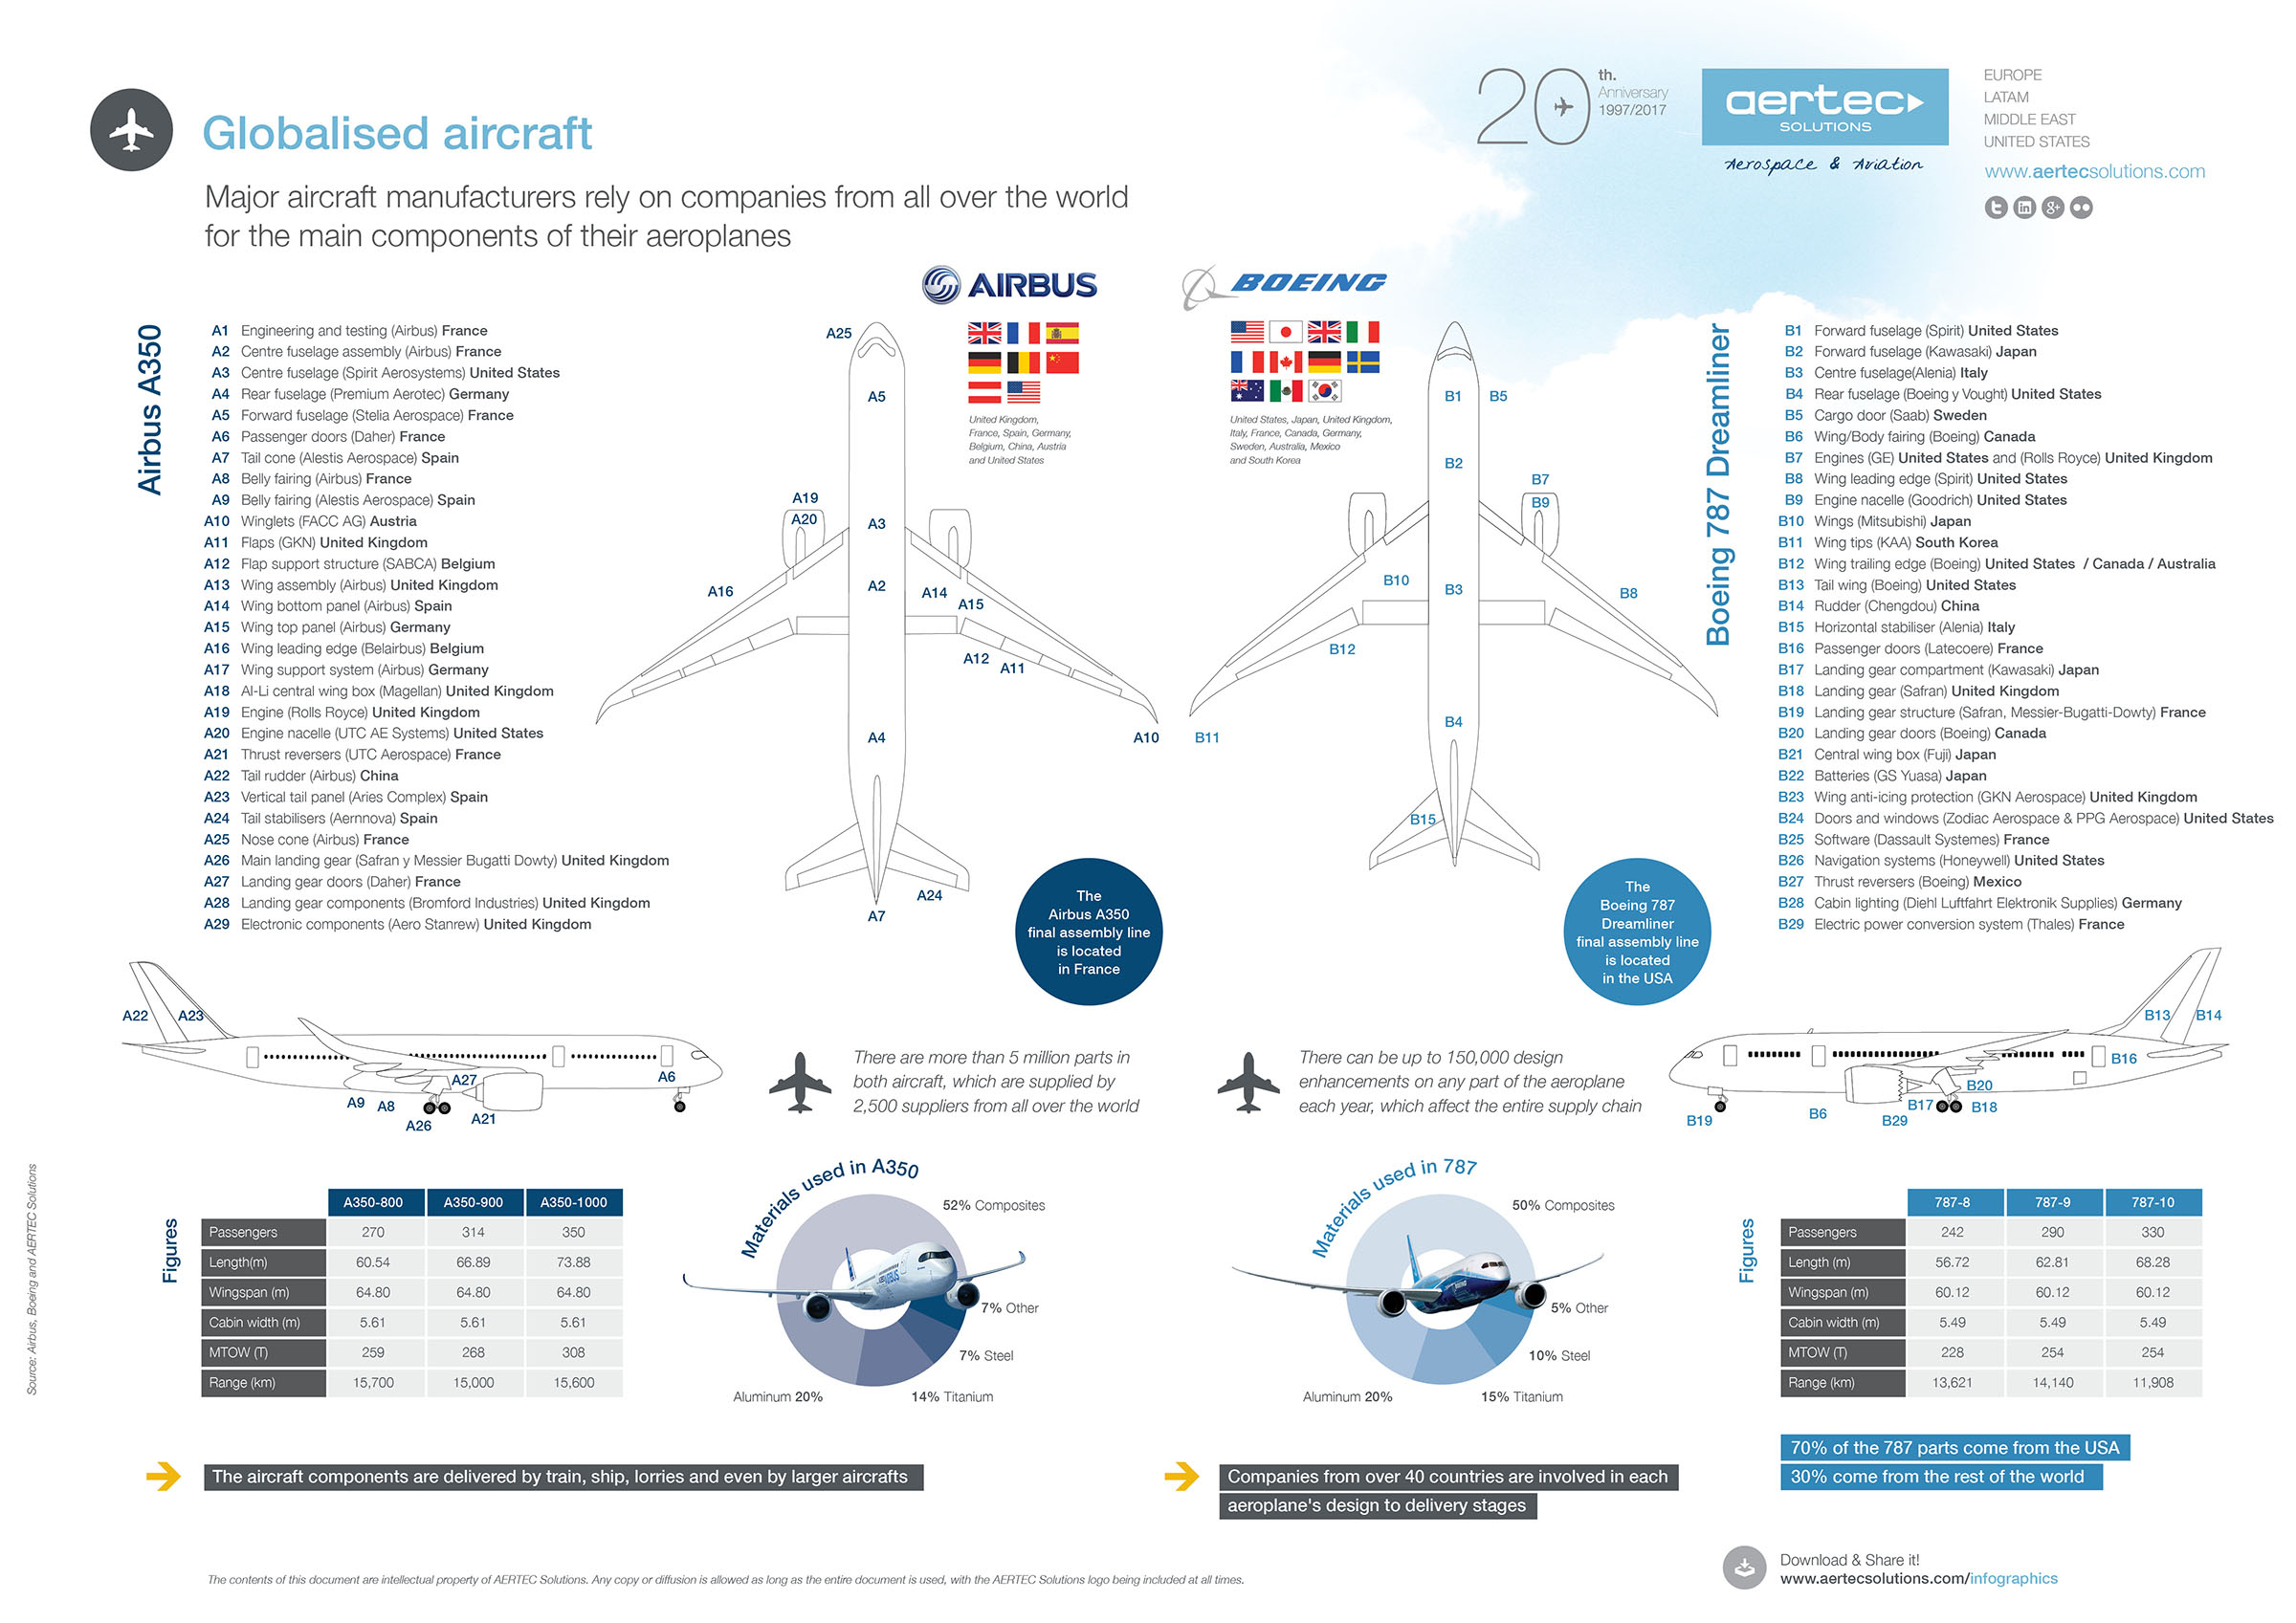 The Globalisation of aircraft